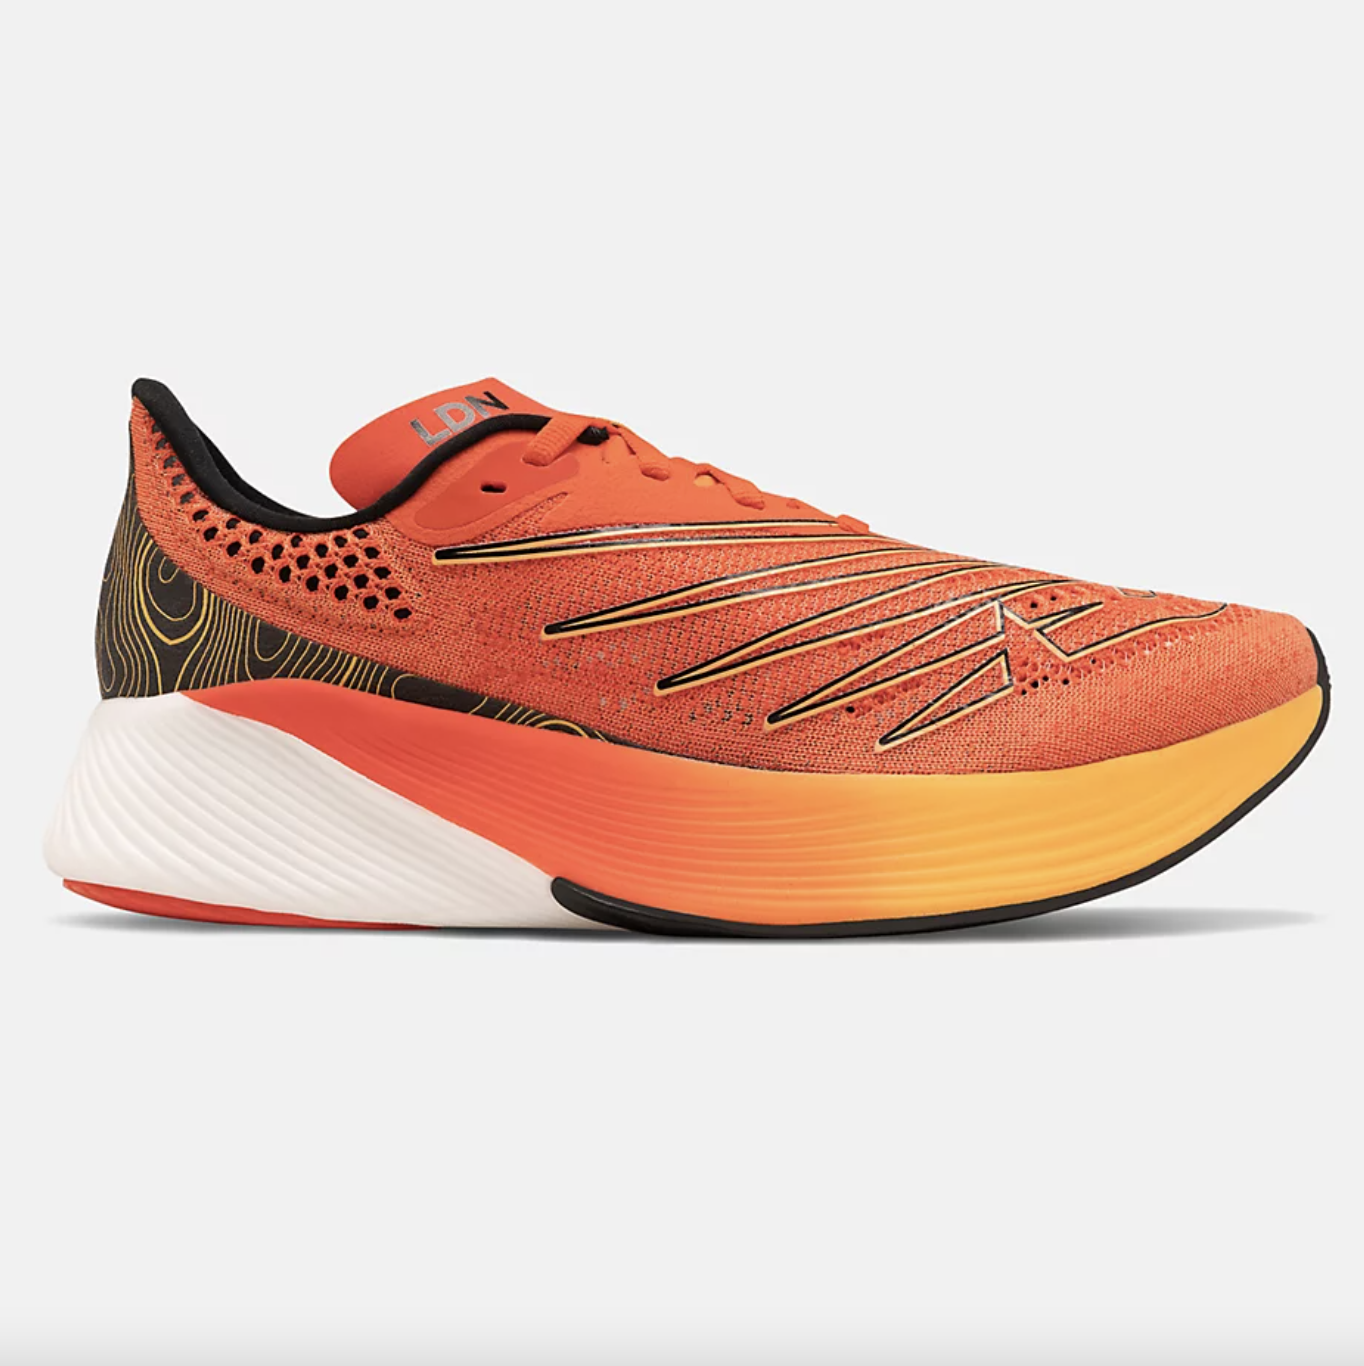 new balance fuelcell rc elite v2 london edition